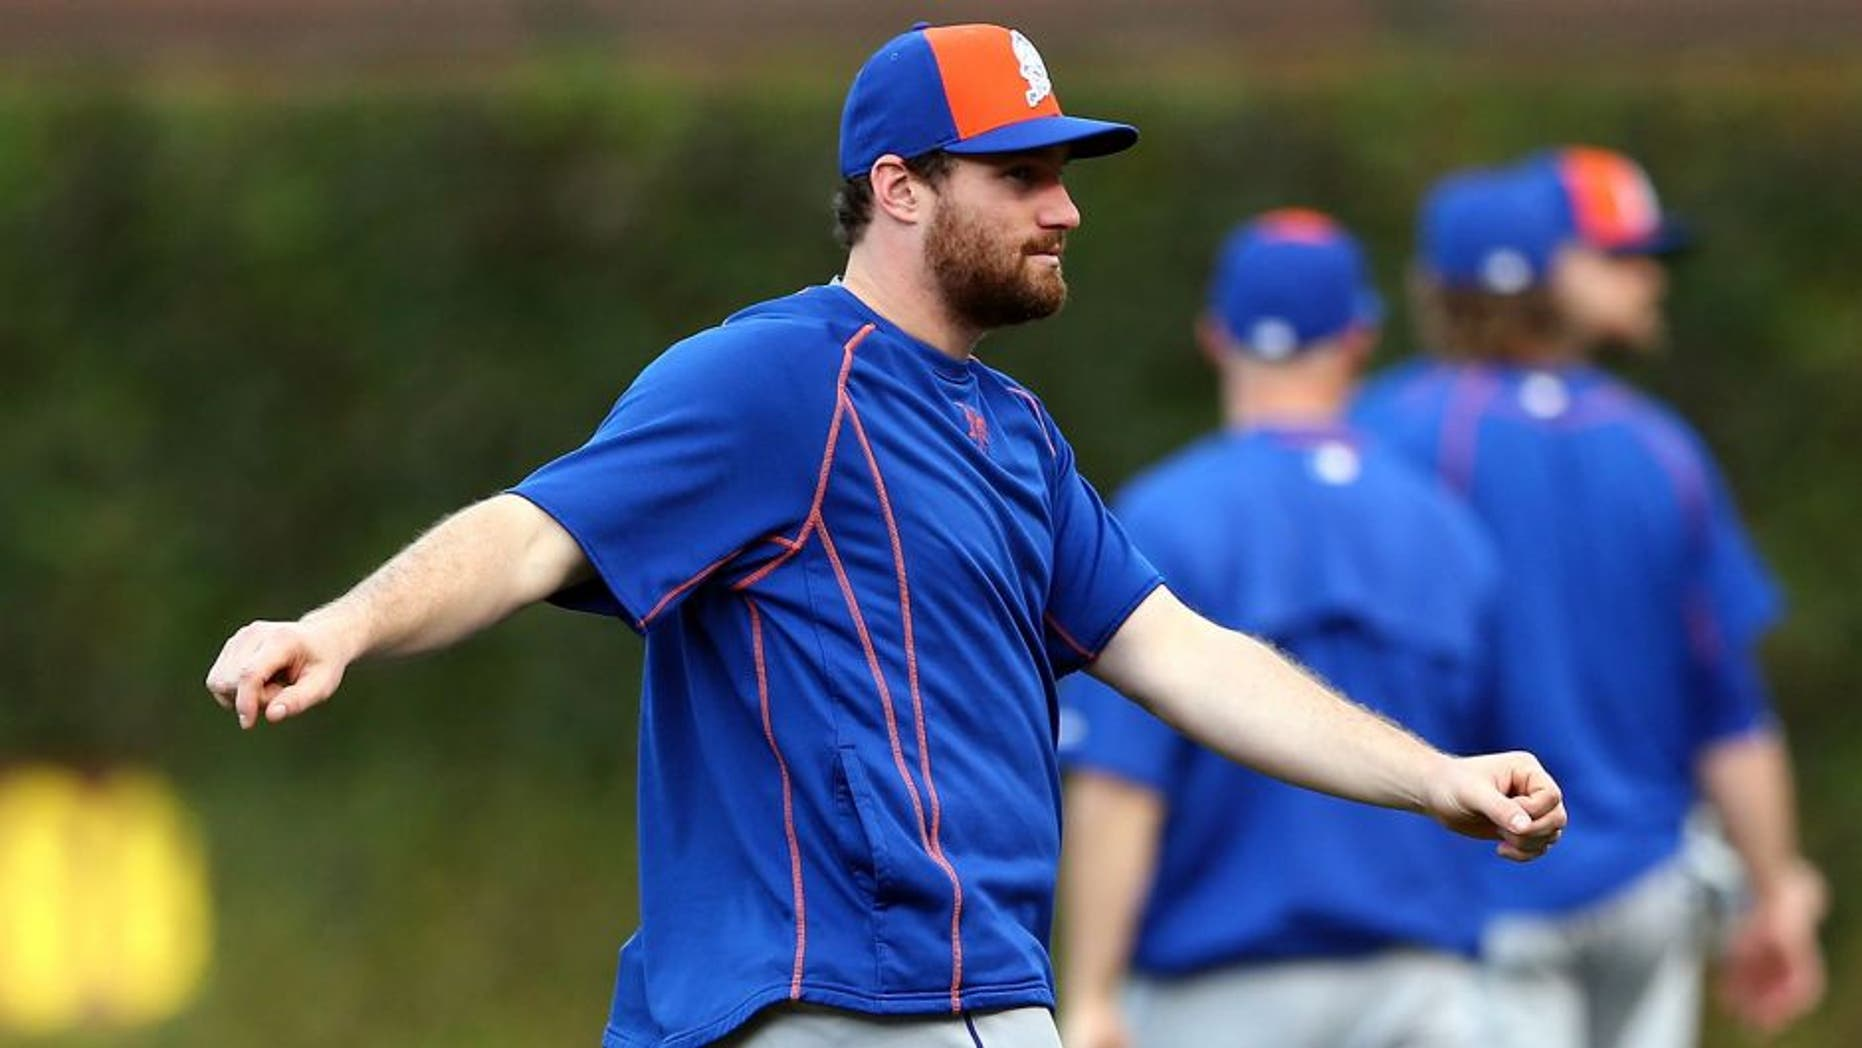 CHICAGO, IL - OCTOBER 21: Daniel Murphy #28 of the New York Mets warms up prior to game four of the 2015 MLB National League Championship Series against the Chicago Cubs at Wrigley Field on October 21, 2015 in Chicago, Illinois. (Photo by Elsa/Getty Images)